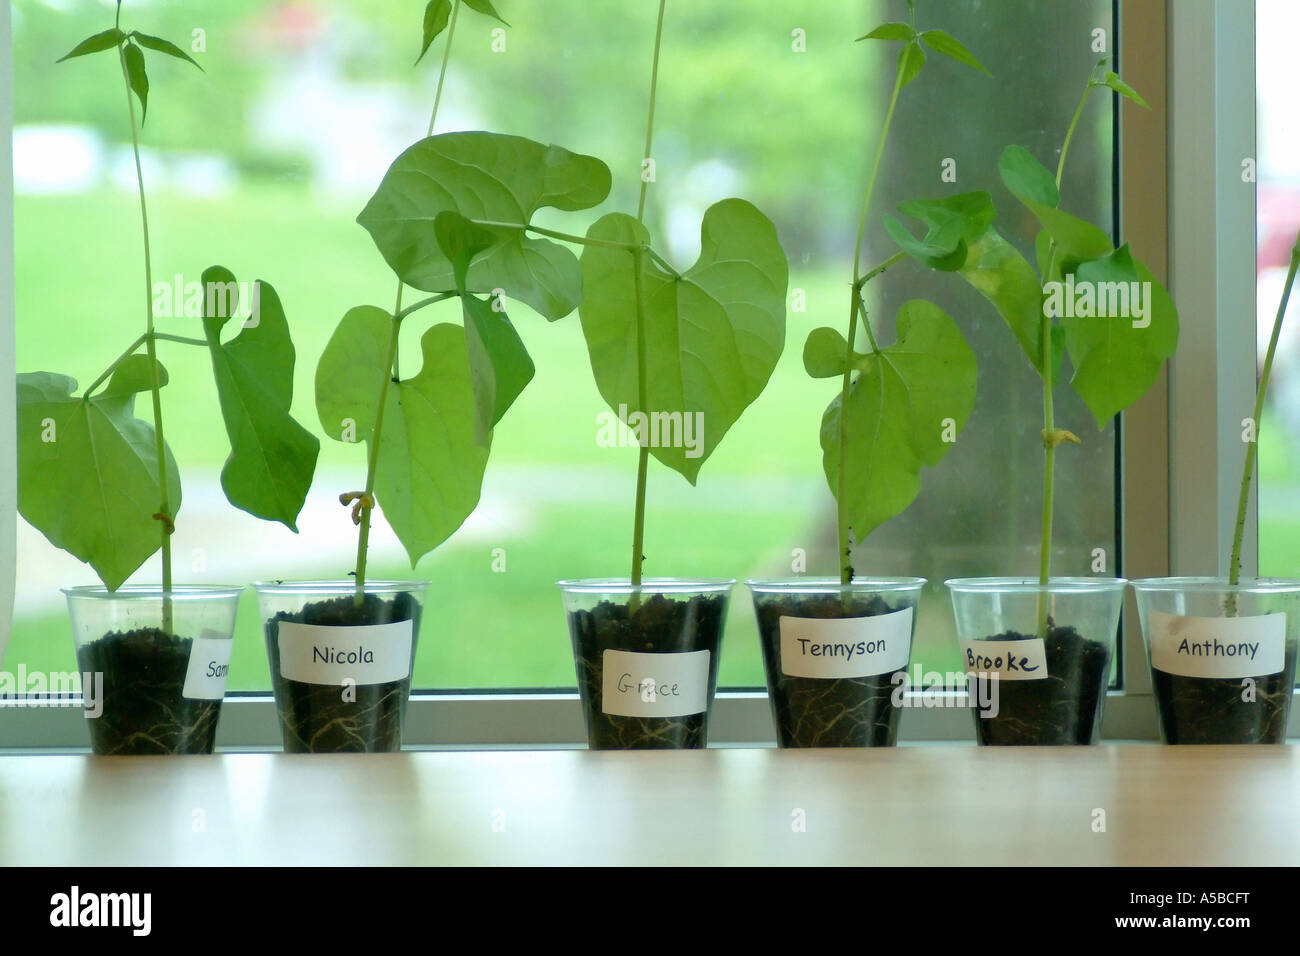 how to grow bean plants for science projects